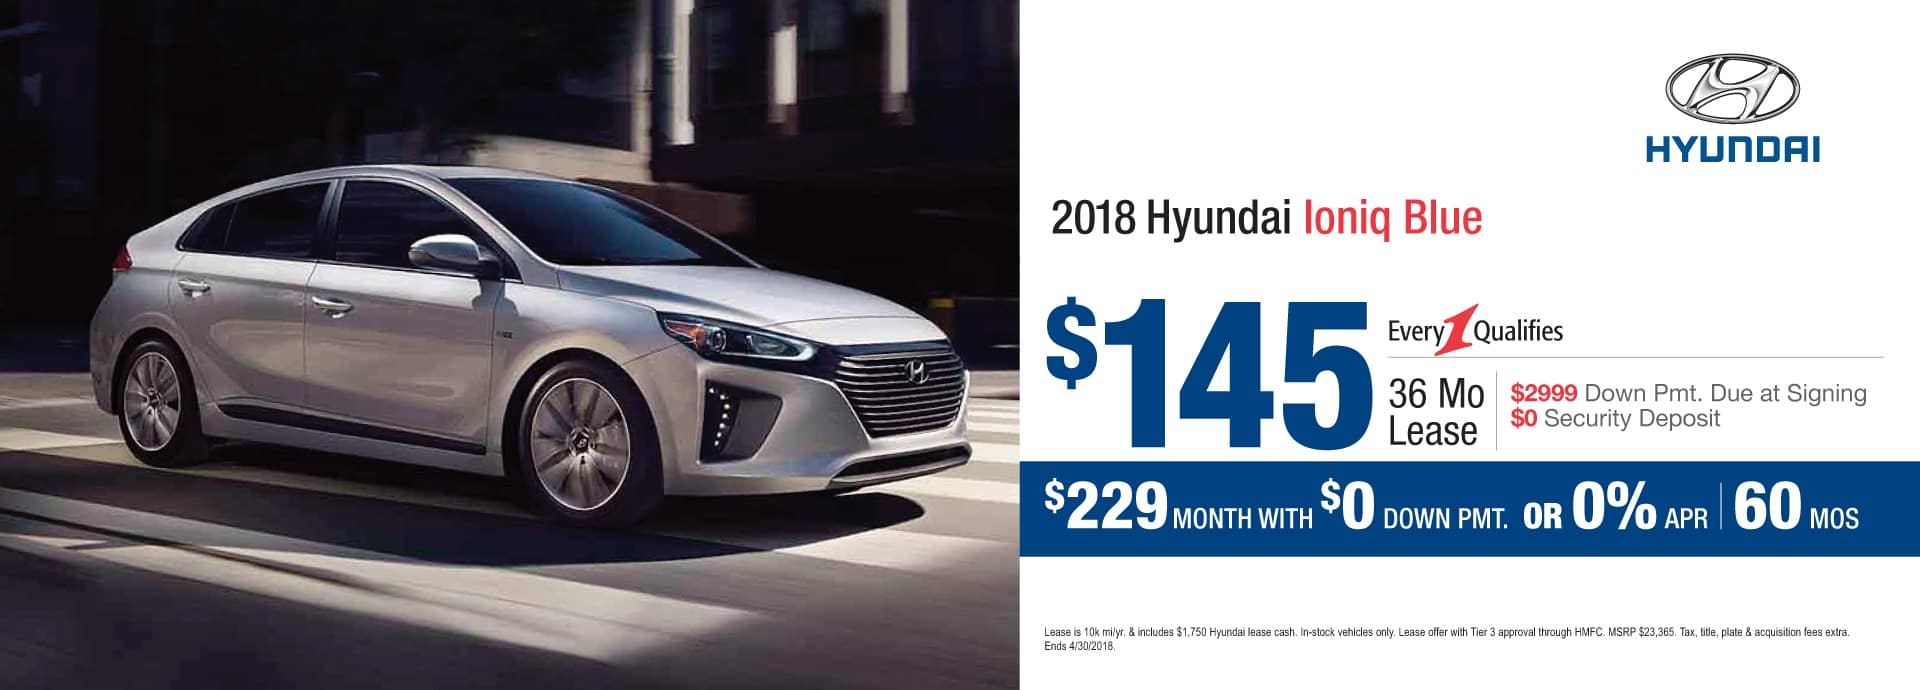 in hatchback accent hyundai river blue city experience models leasing the